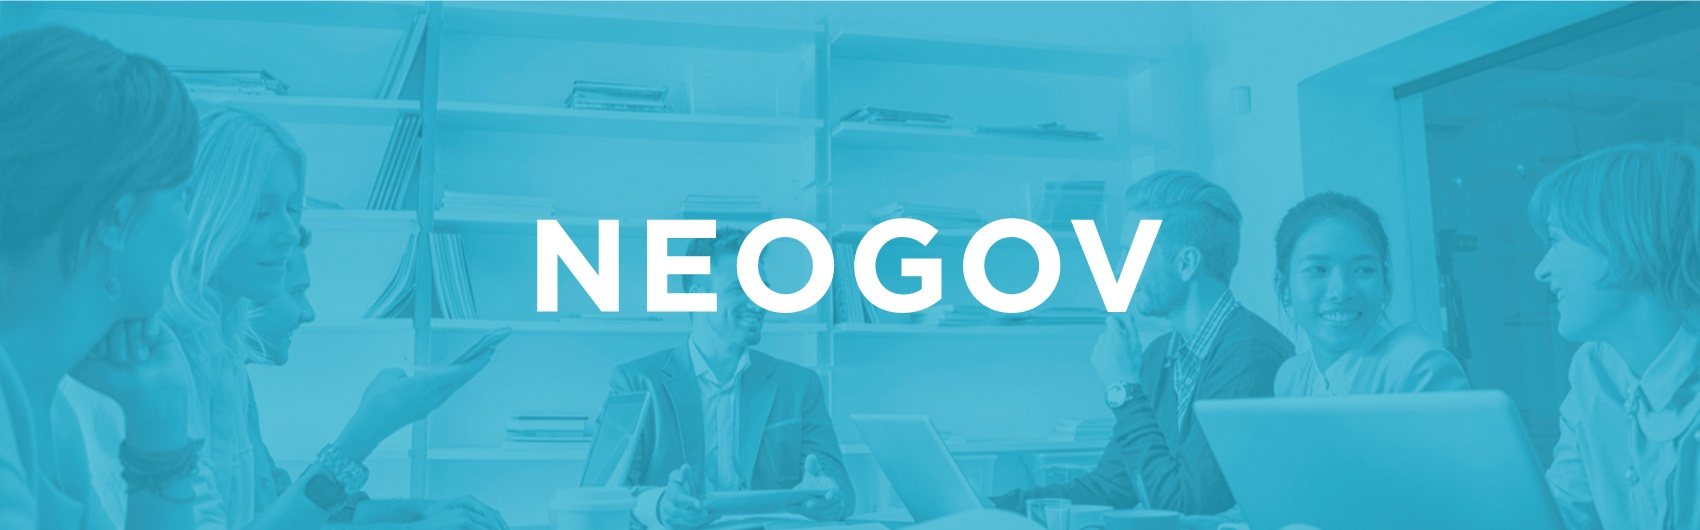 NEOGOV Announces Purchase of FirstNet Learning